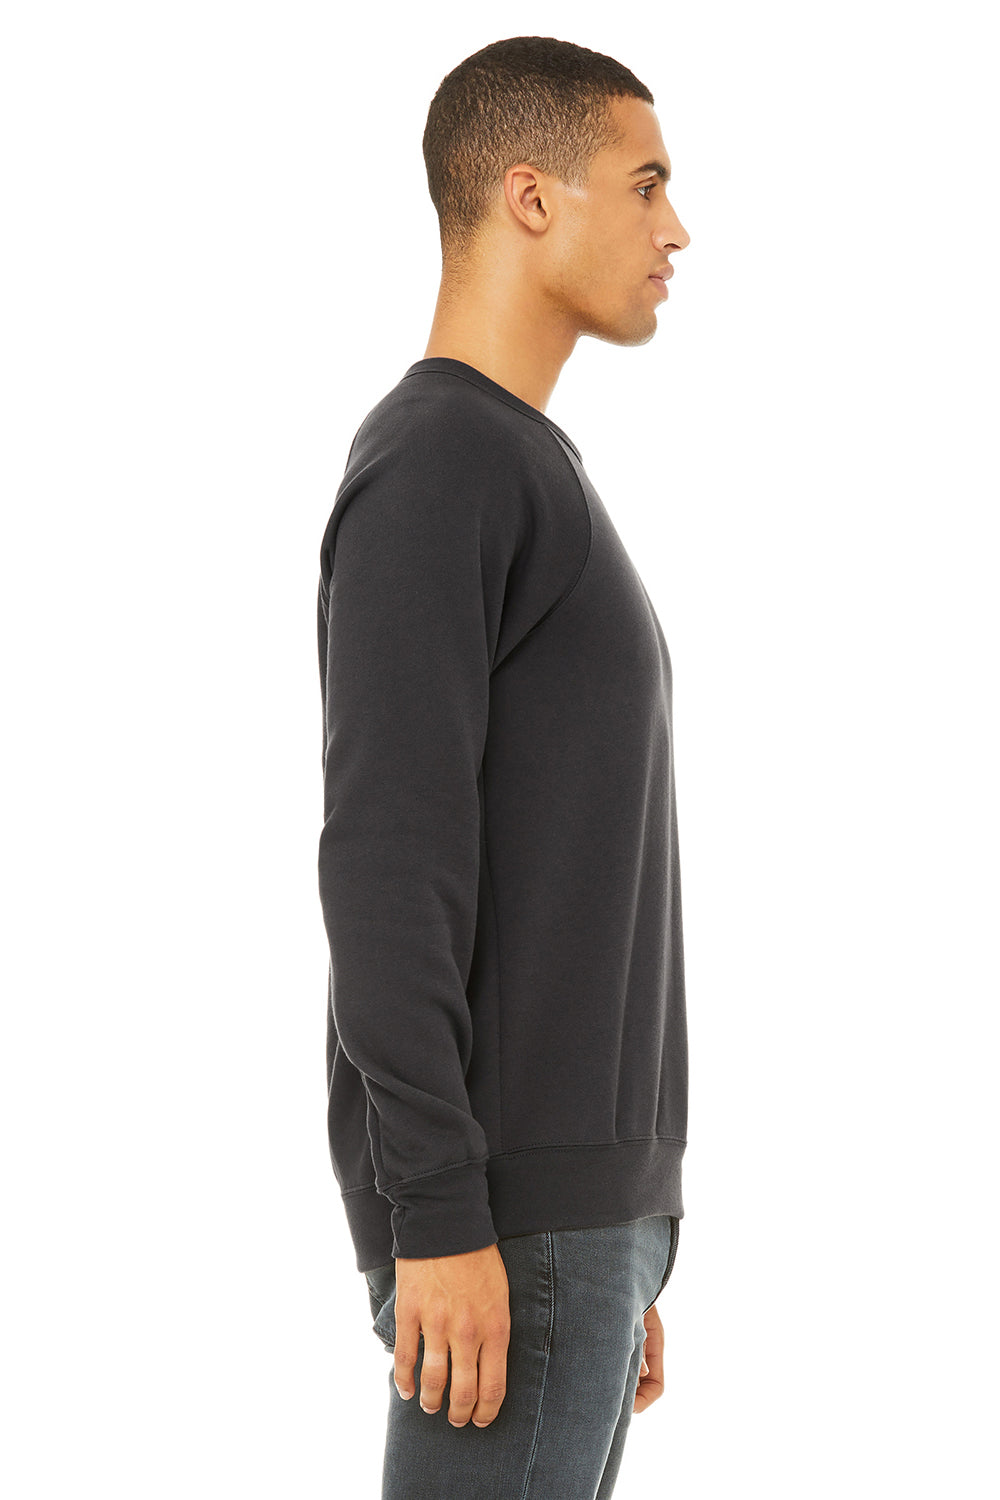 Bella + Canvas 3901 Mens Sponge Fleece Crewneck Sweatshirt Dark Grey Side